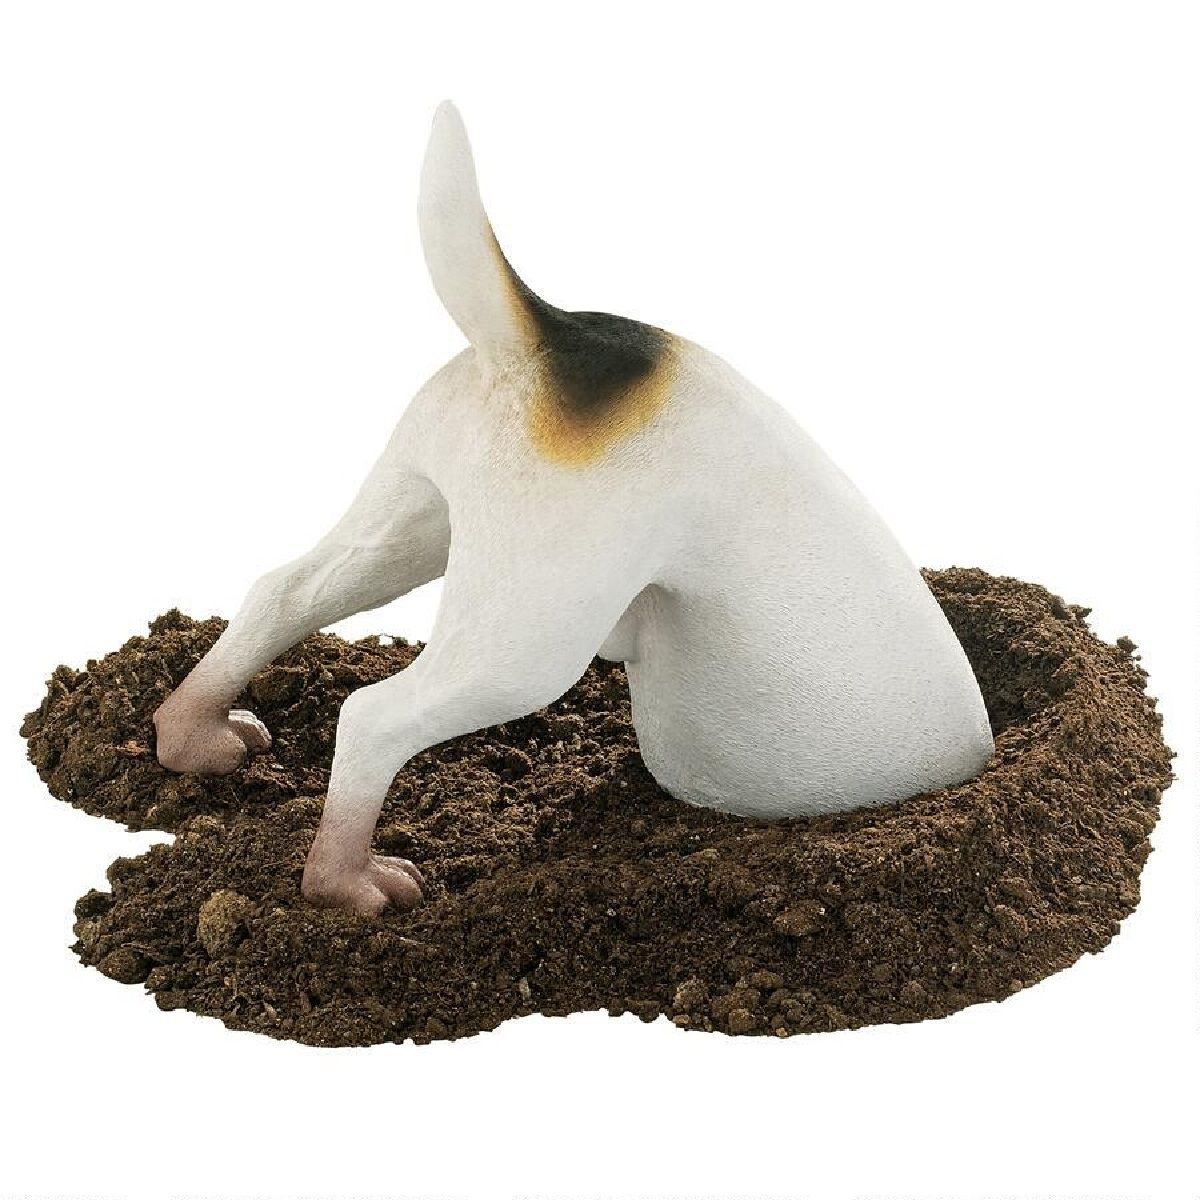 12 Dog Terrier Digging Animal Outdoor Statue In 2021 Dog Garden Statues Digging Dogs Dog Statue